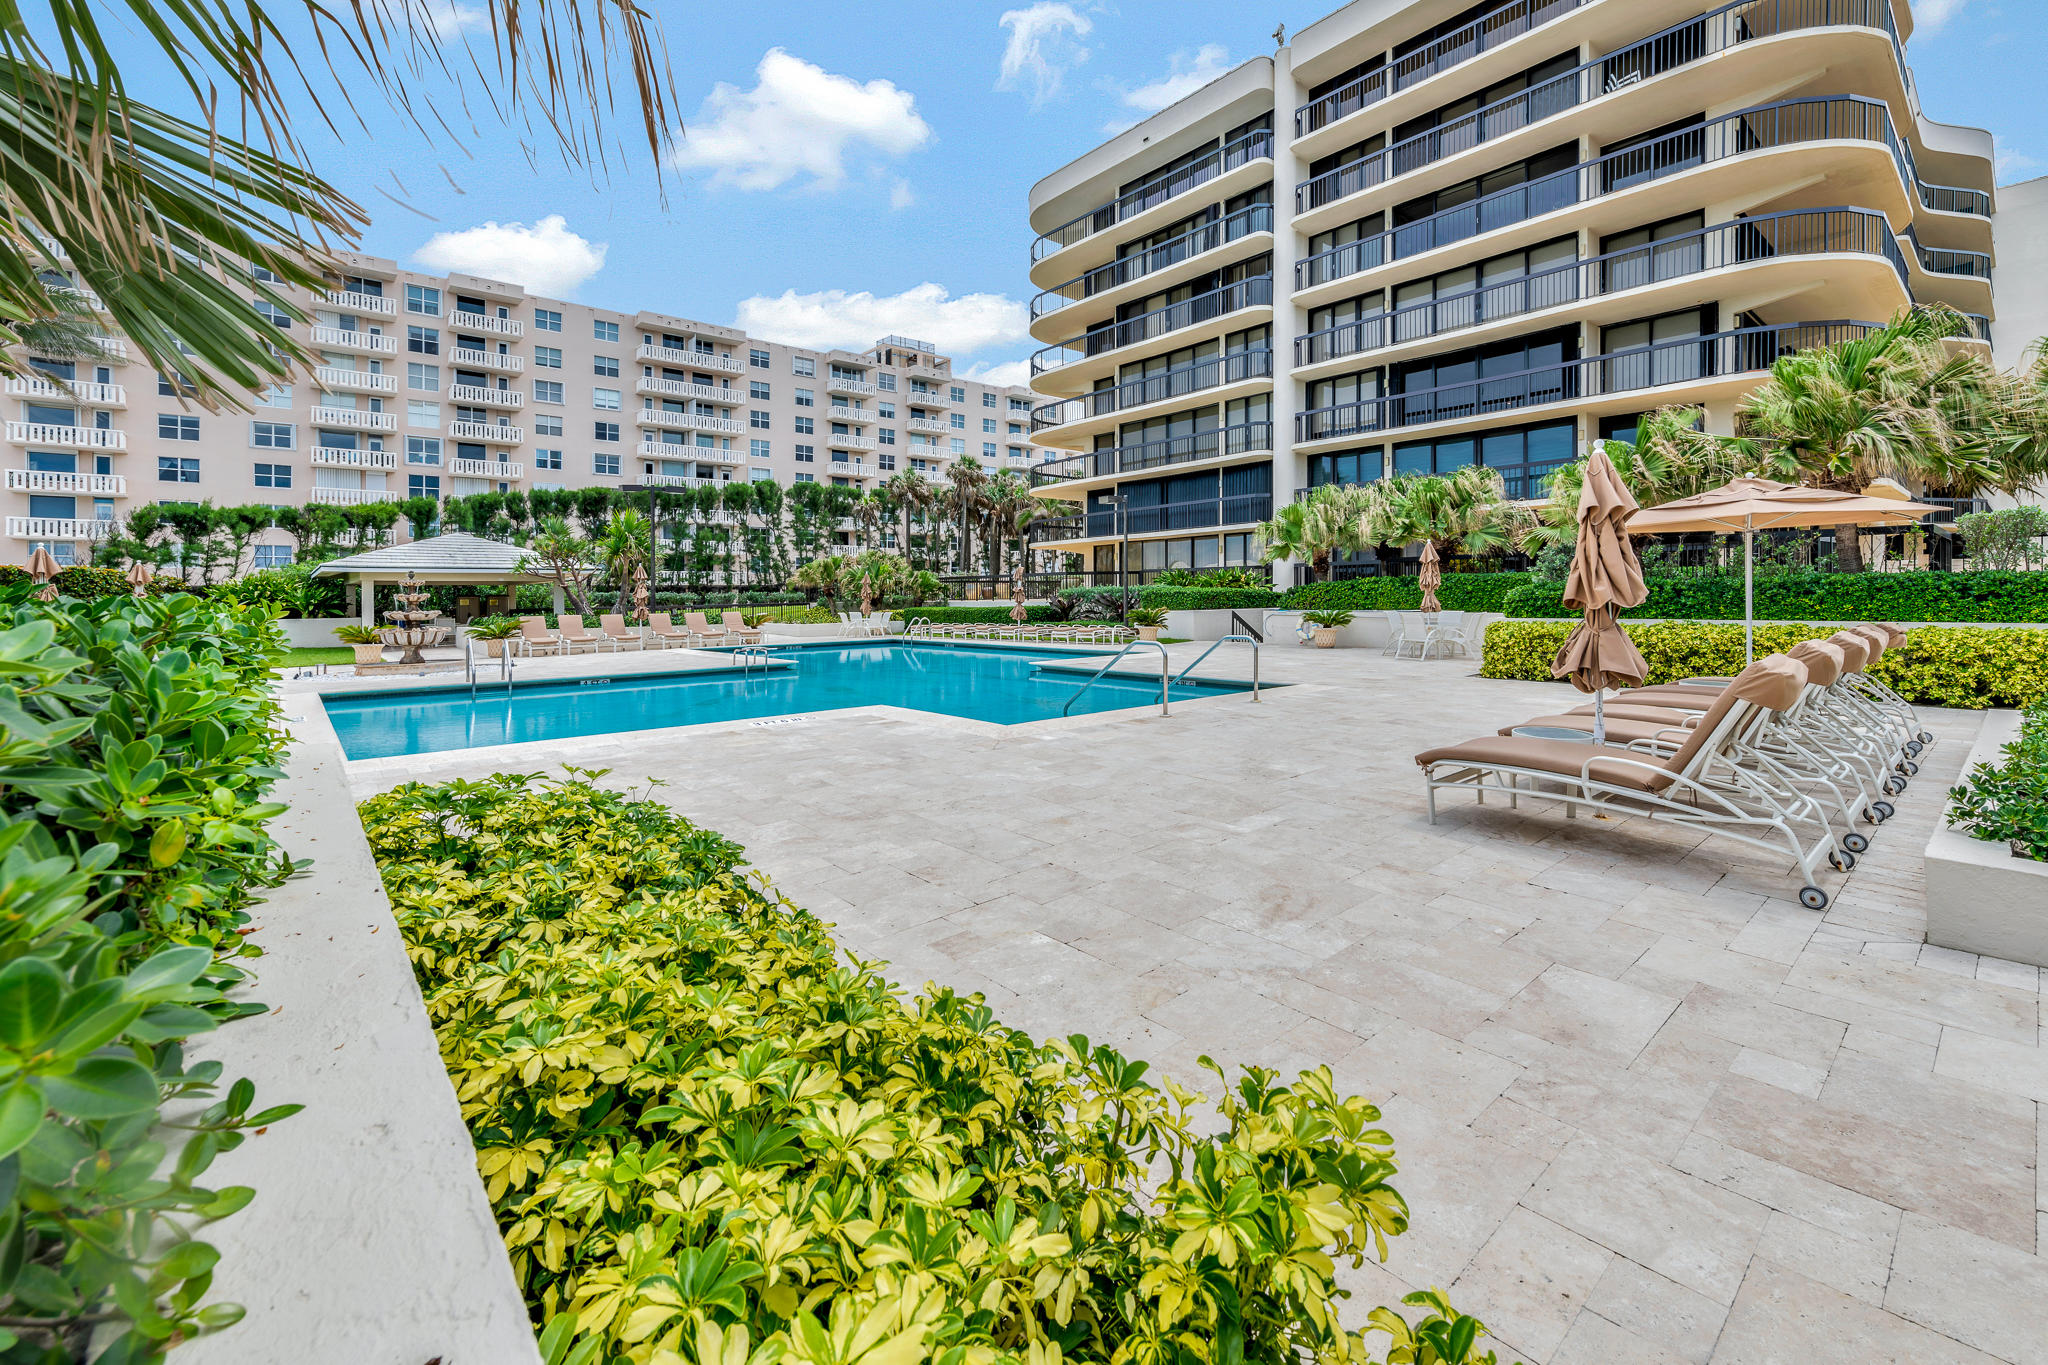 Breathtaking Oceanfront from this south east corner unit. Grand wraparound terrace affords ocean, intracoastal and pool views. The open kitchen upgraded with granite counter tops, stainless steel appliances and wood cabinets. Recently upgraded amenities. 2 Har Tru Tennis Courts, 24 hour doorman. Garage Parking.